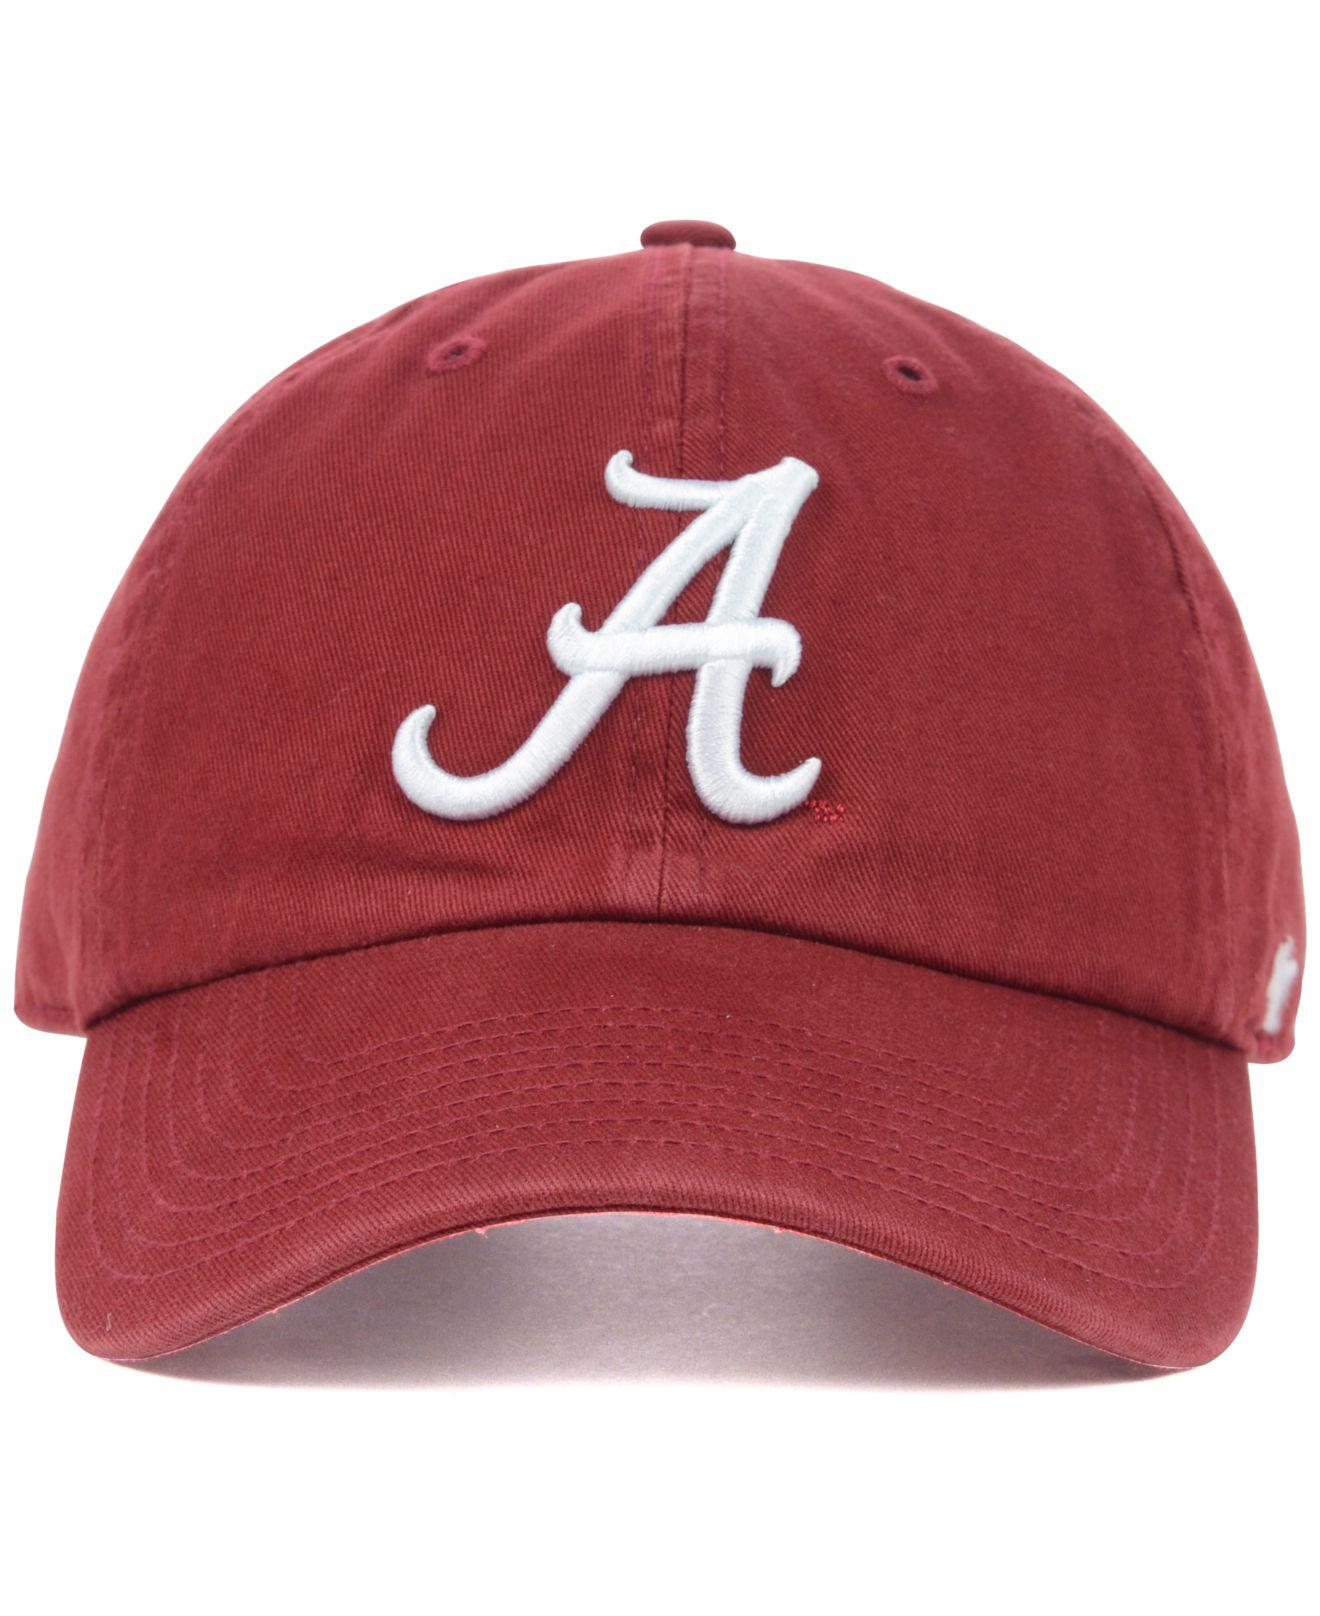 official photos 0a8af 424fc ... top quality lyst 47 brand alabama crimson tide ncaa clean up cap in red  for men